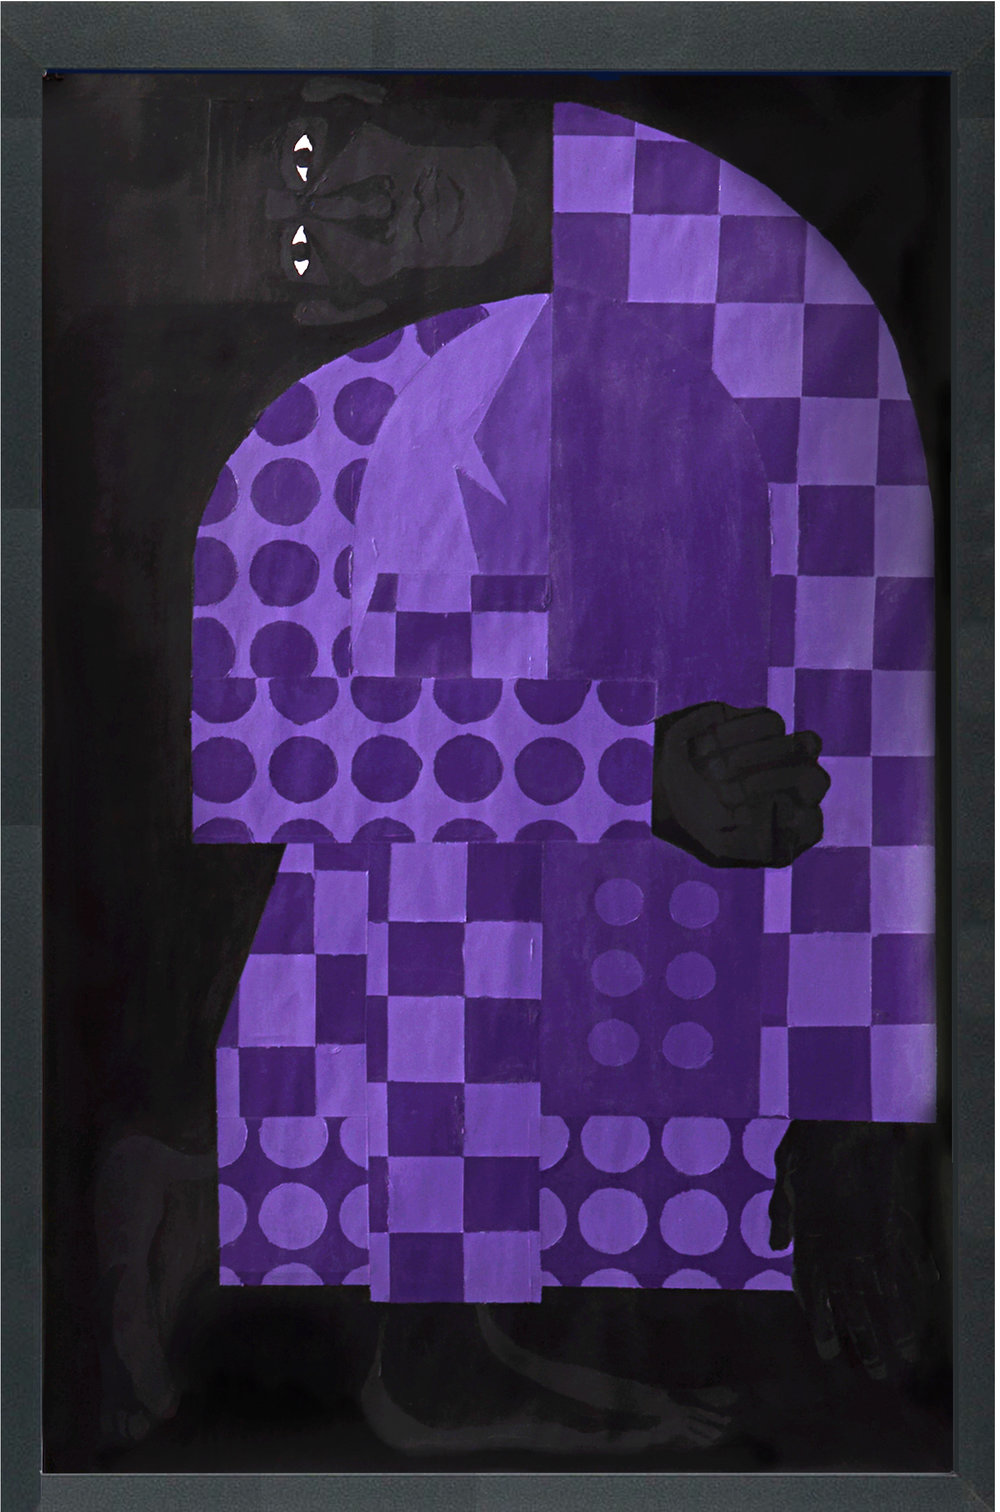 Man in the Violet Suit No. 4